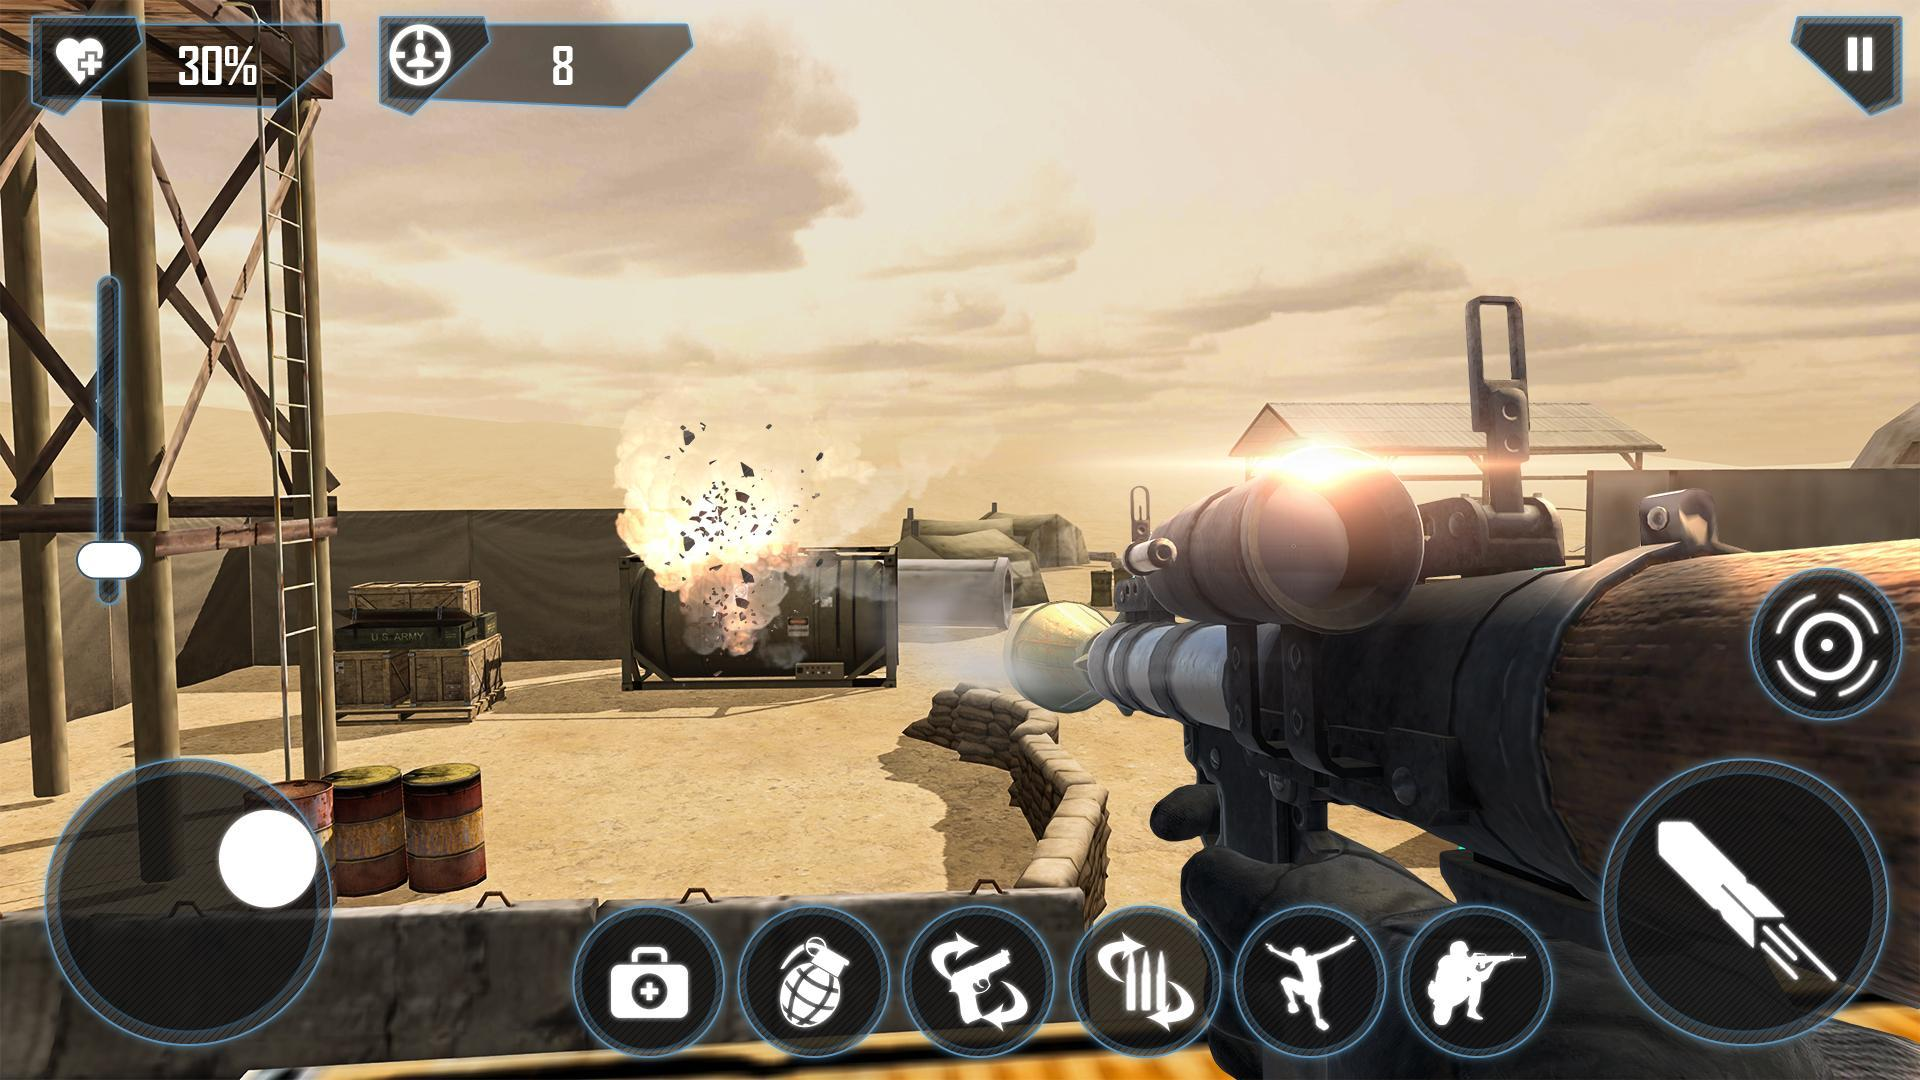 Frontline : Modern Combat Mission for Android - APK Download